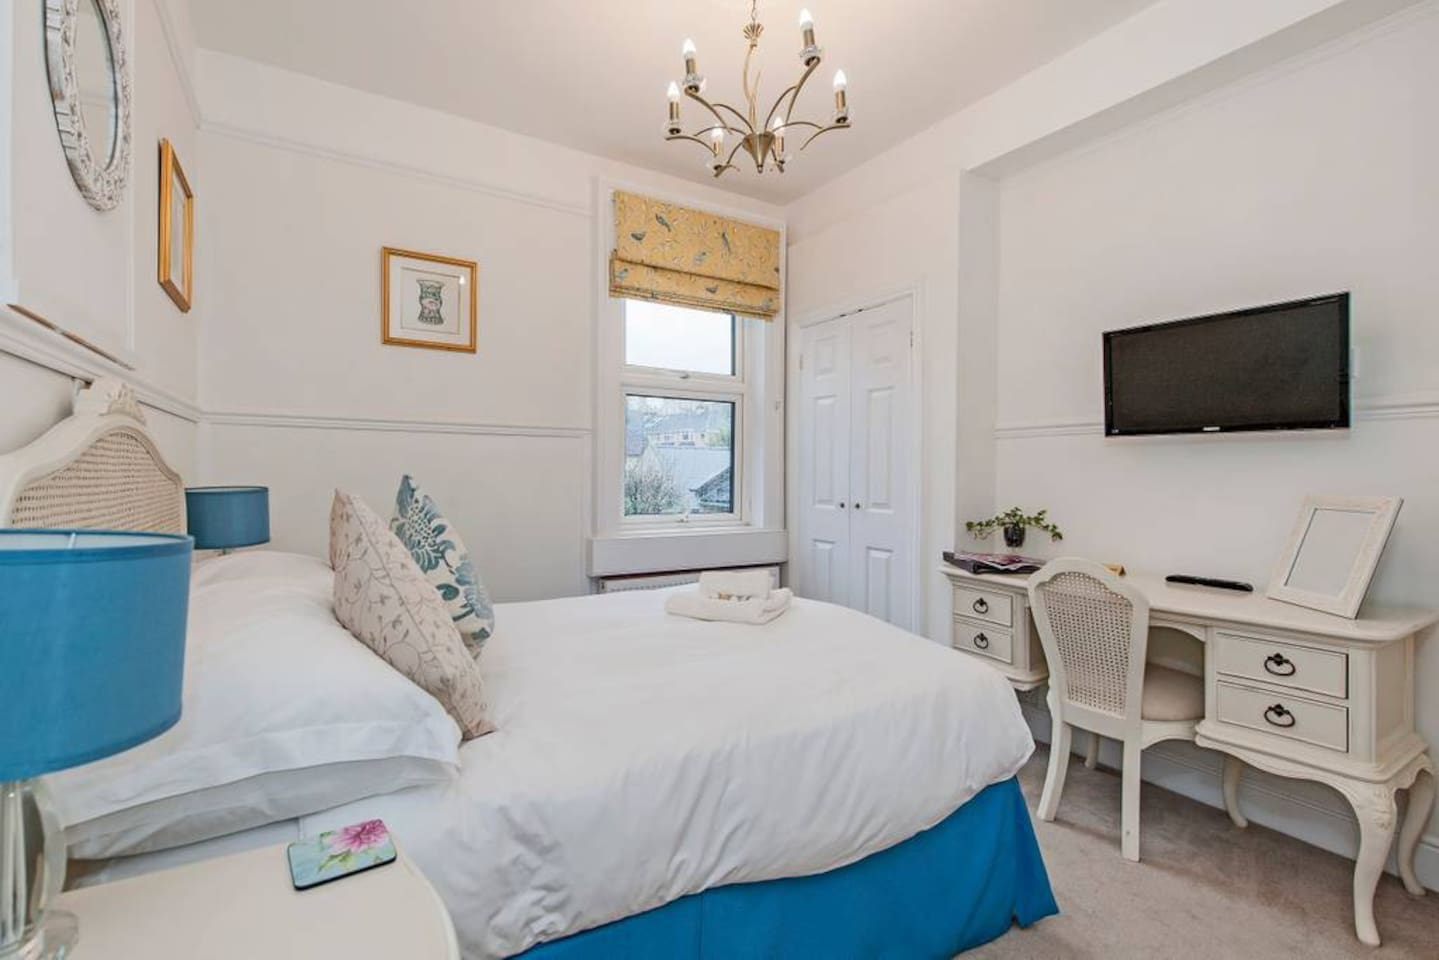 https://www.airbnb.co.uk/rooms/4995011?